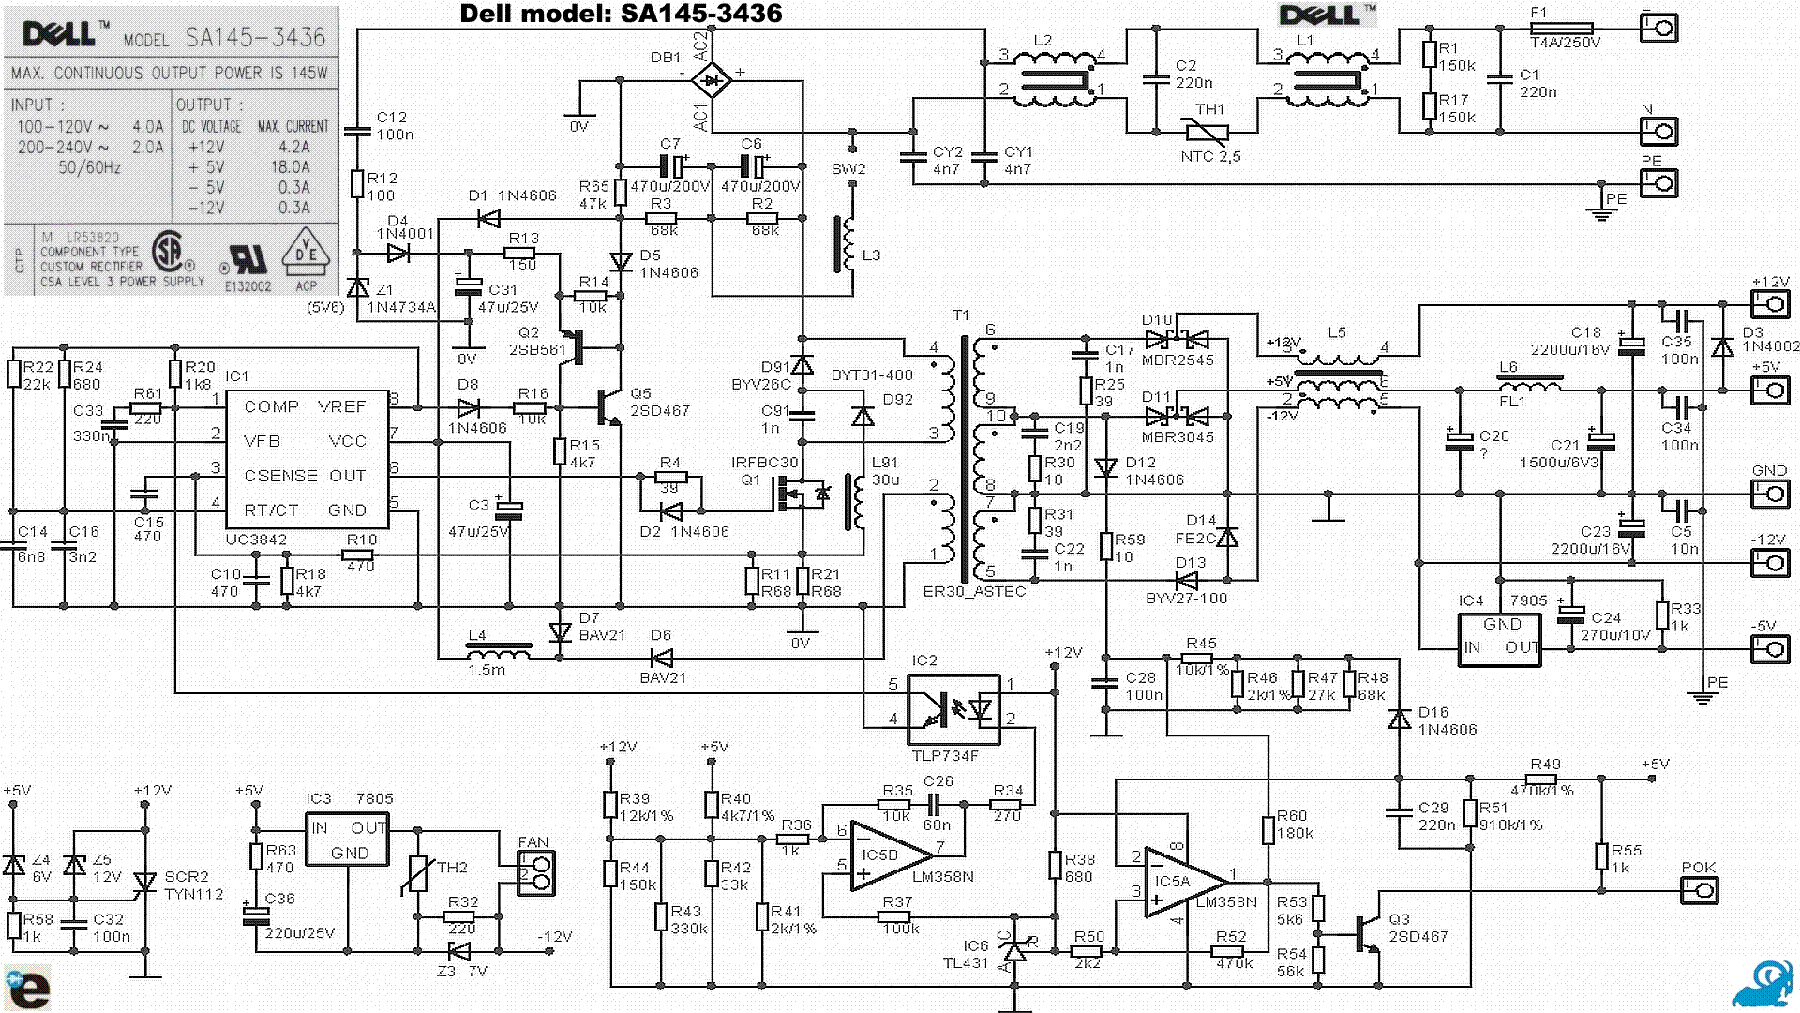 dell schematics diagram manual data wiring diagram updatedell sa145 3436 power supply schematic service manual download iphone schematic diagram dell sa145 3436 power